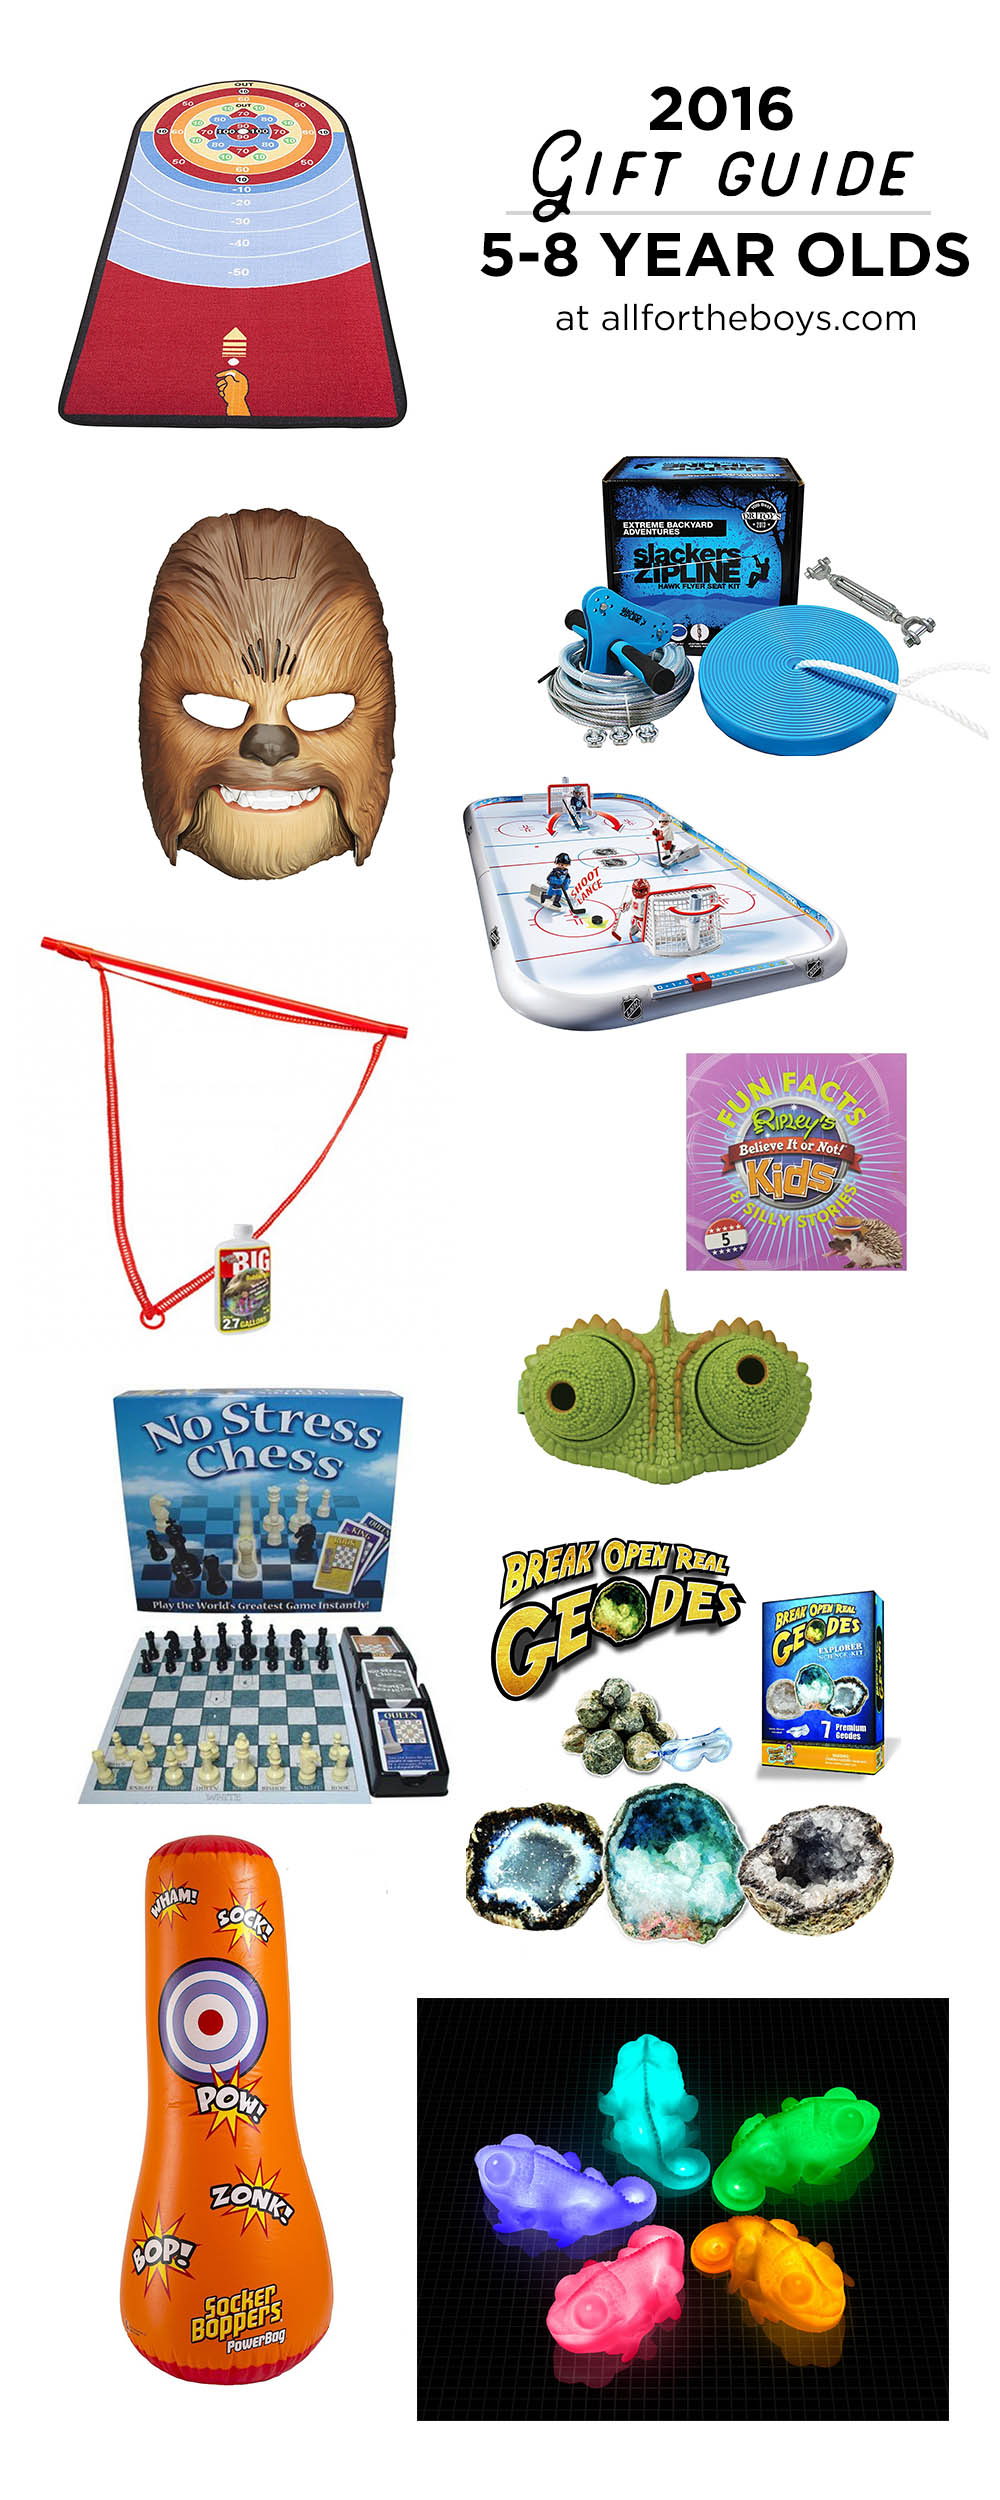 2016 Gift Guide for preschoolers - great gift ideas for school aged kids around 5 - 8 years old